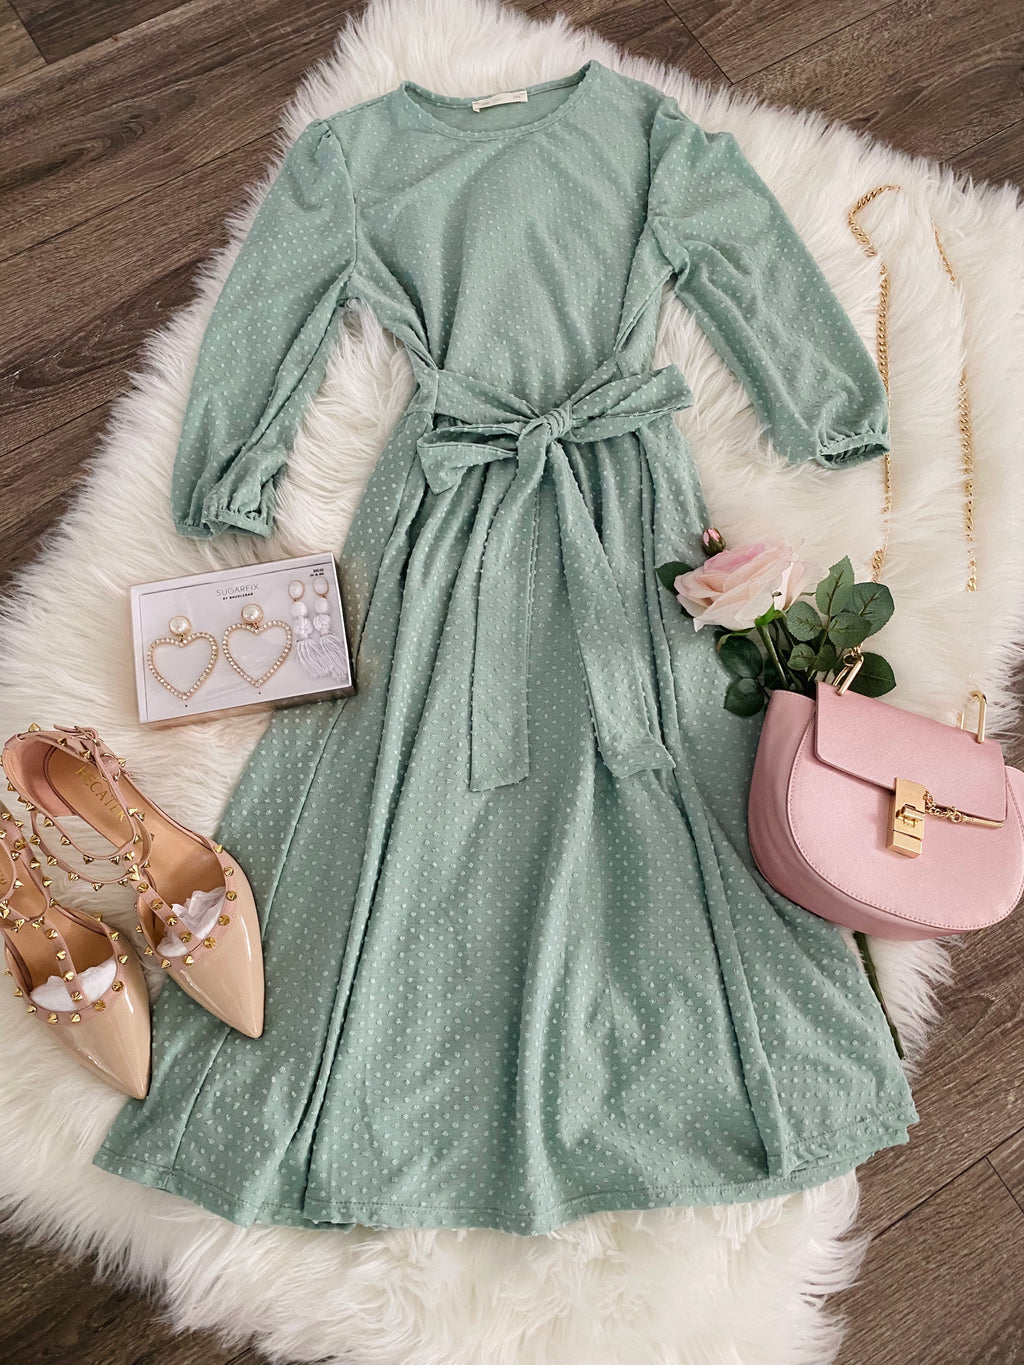 Everlasting Love Dress - In Mint